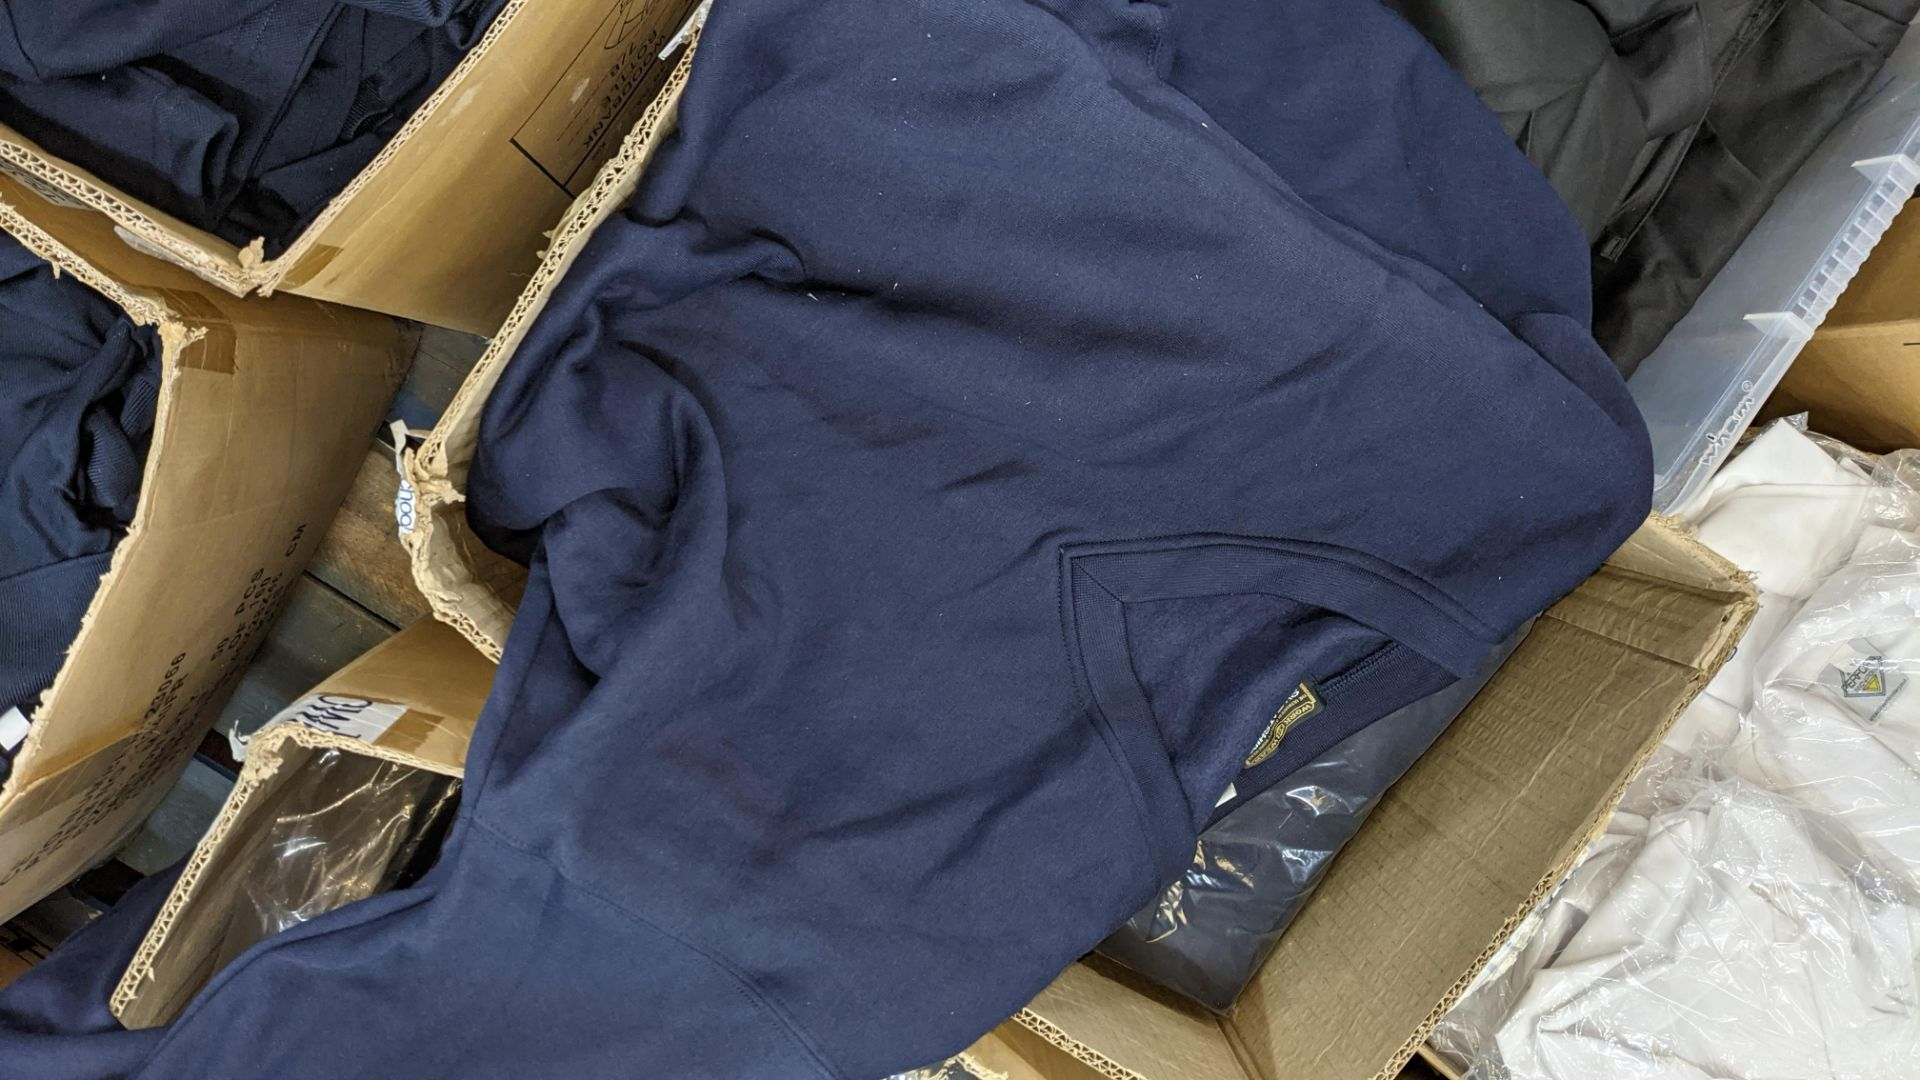 Approx 20 off blue sweatshirts - 1 large box - Image 4 of 5